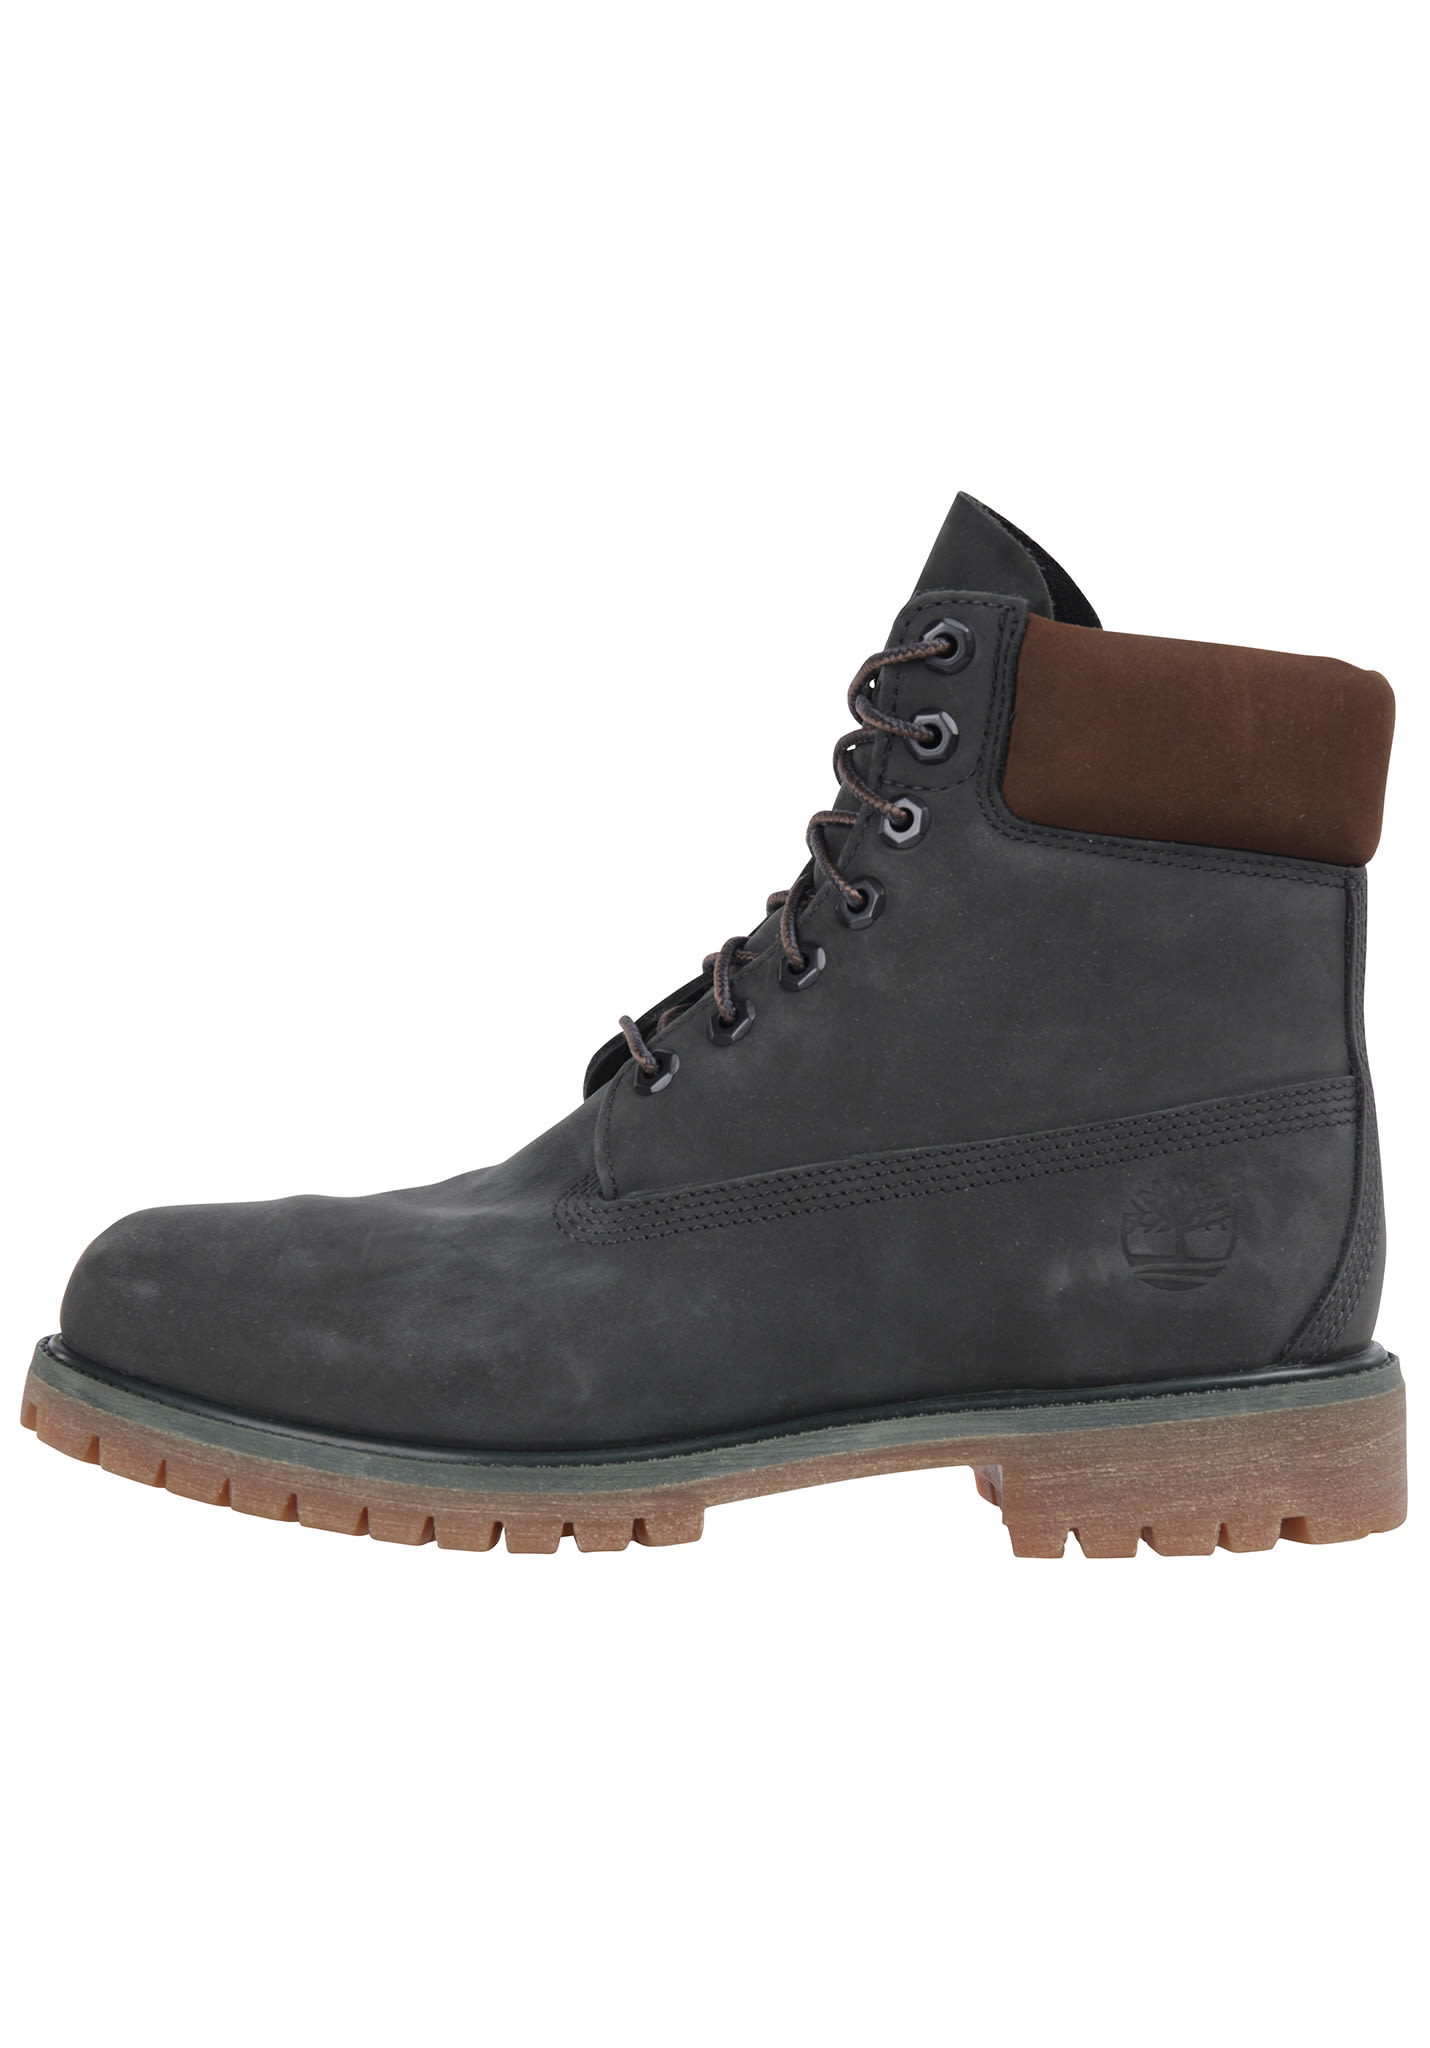 Zapatos grises formales Timberland Earthkeepers para hombre Xjujo